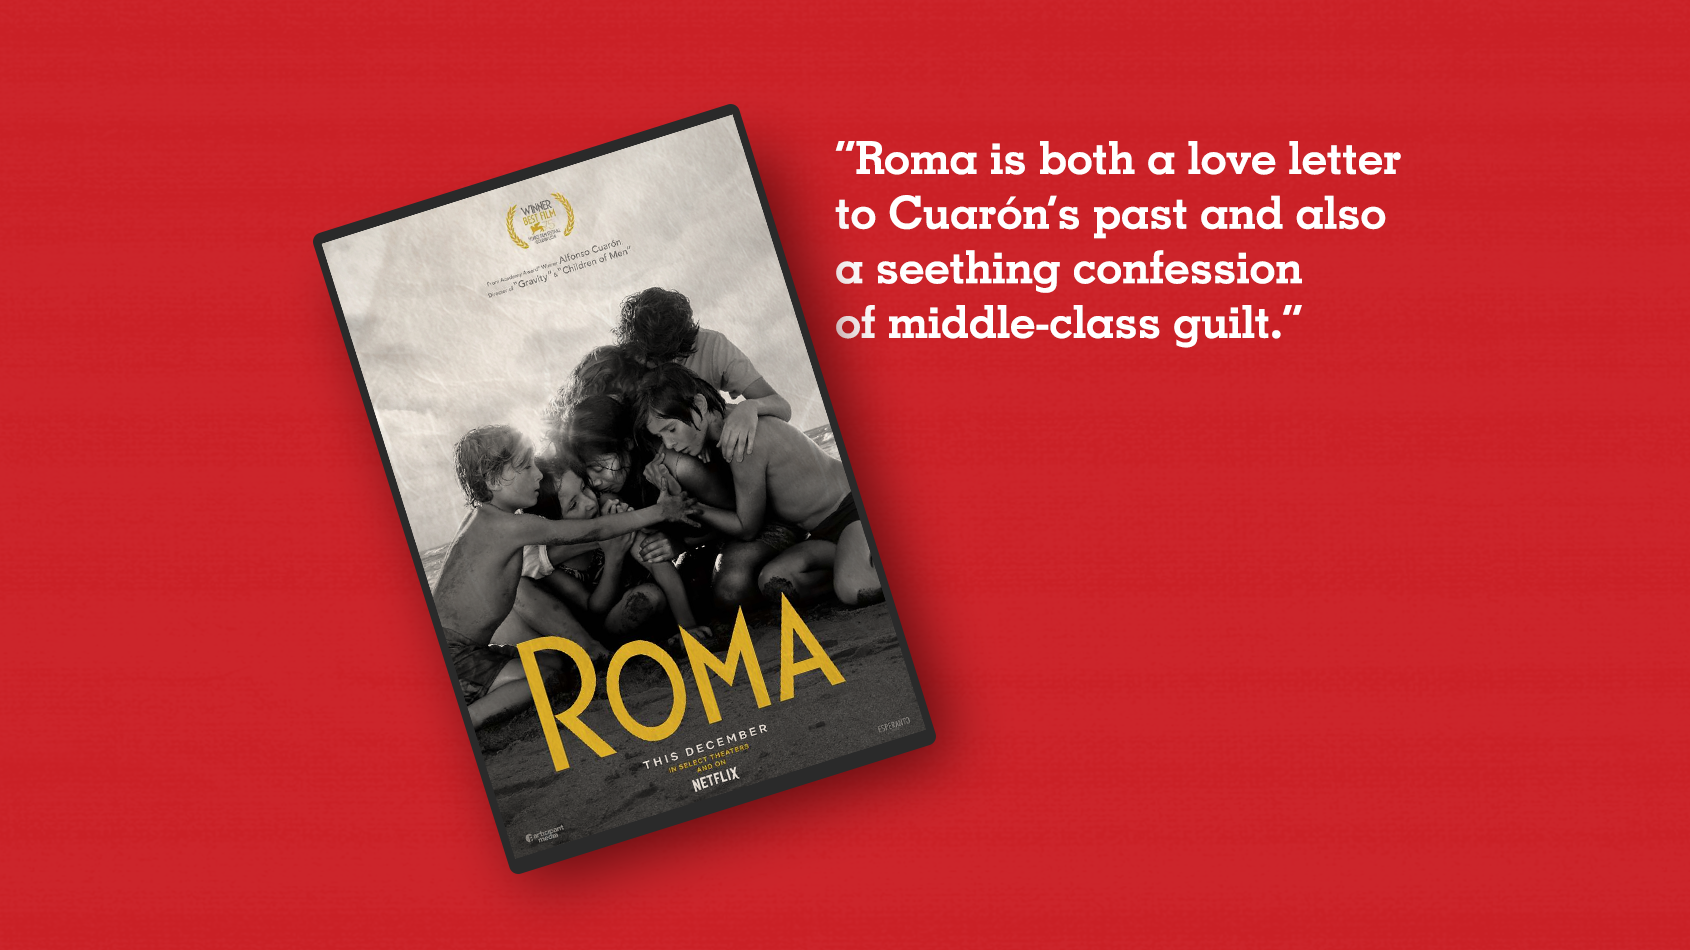 Roma': Alfonso Cuarón's Film Is A Complicated Look At Mexico's